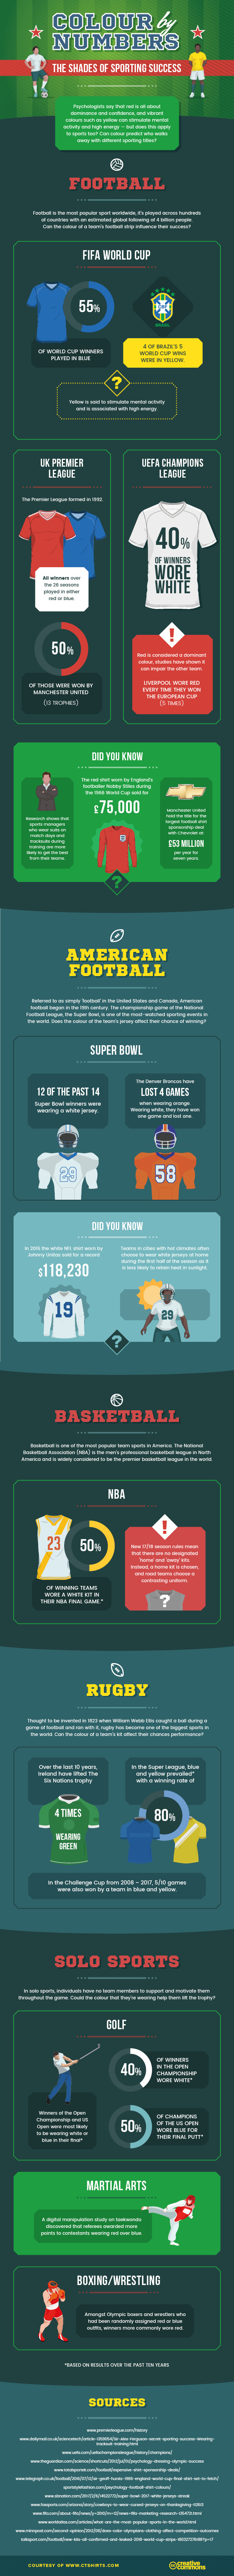 CT Shirts - Sports shirts - colour by numbers v2.jpg